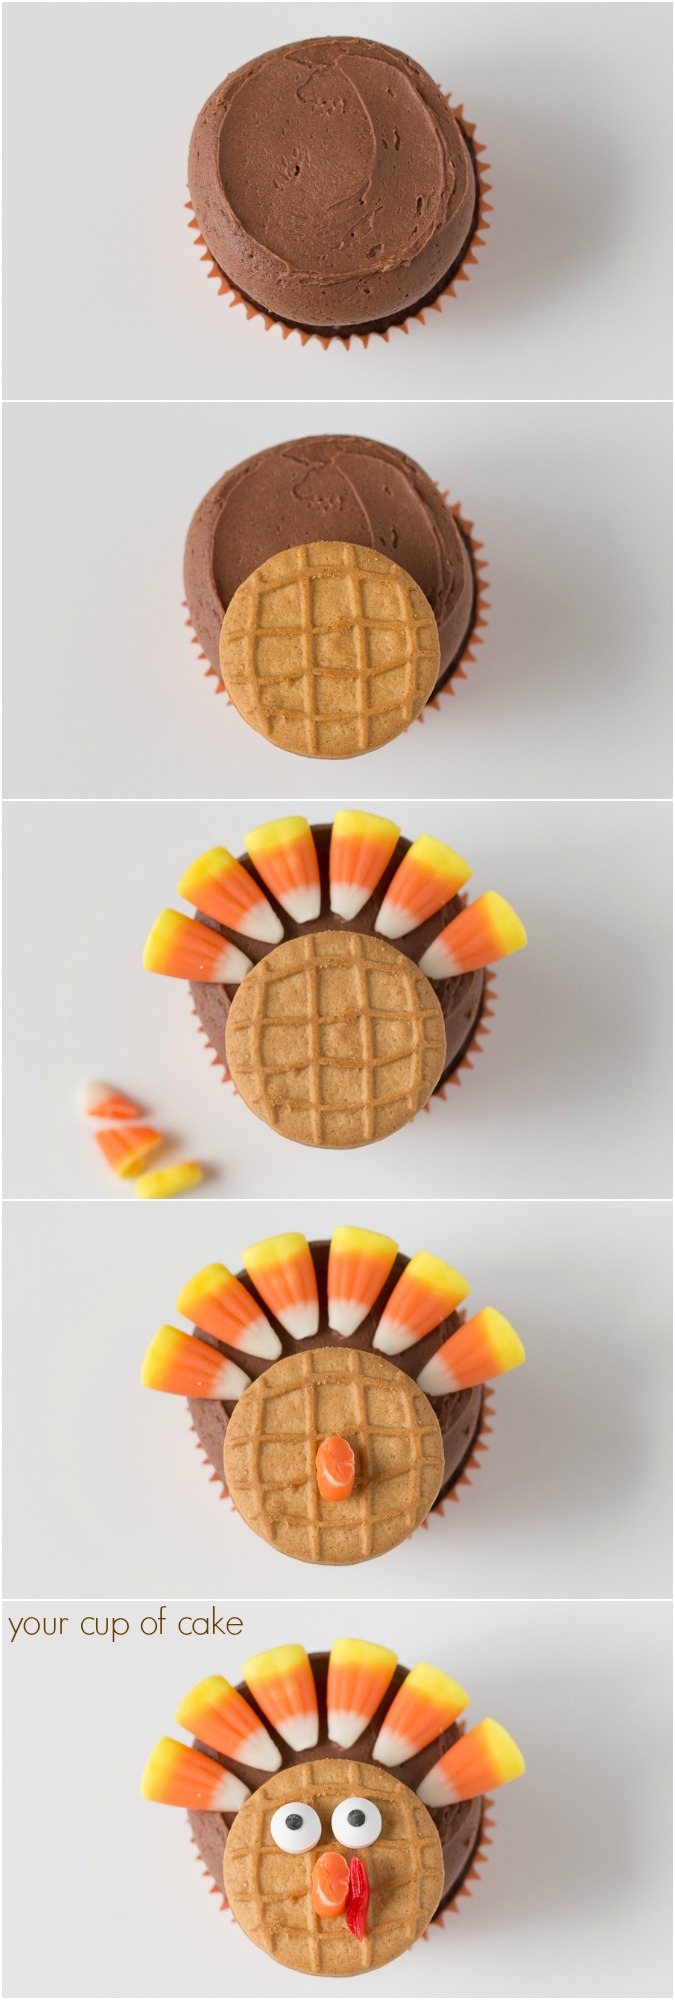 How to make Chocolate Turkey Cupcakes